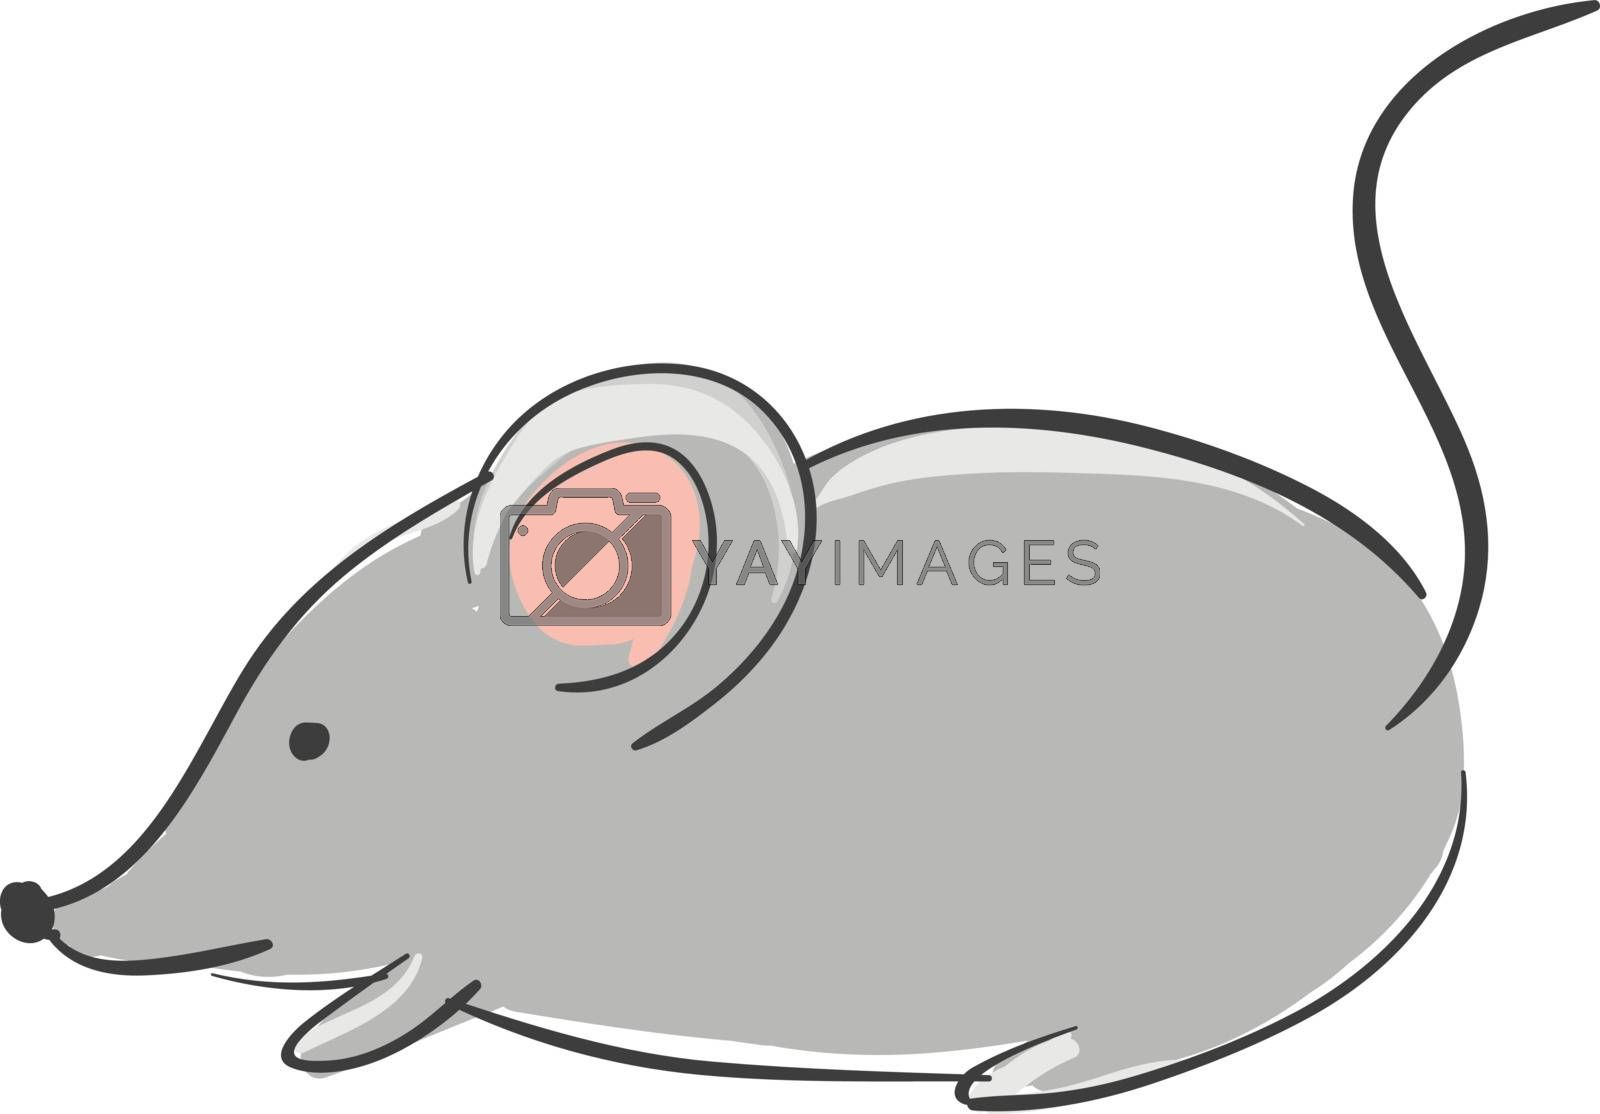 Royalty free image of Cartoon grey mouse/Cute little cartoon mouse vector or color ill by Morphart